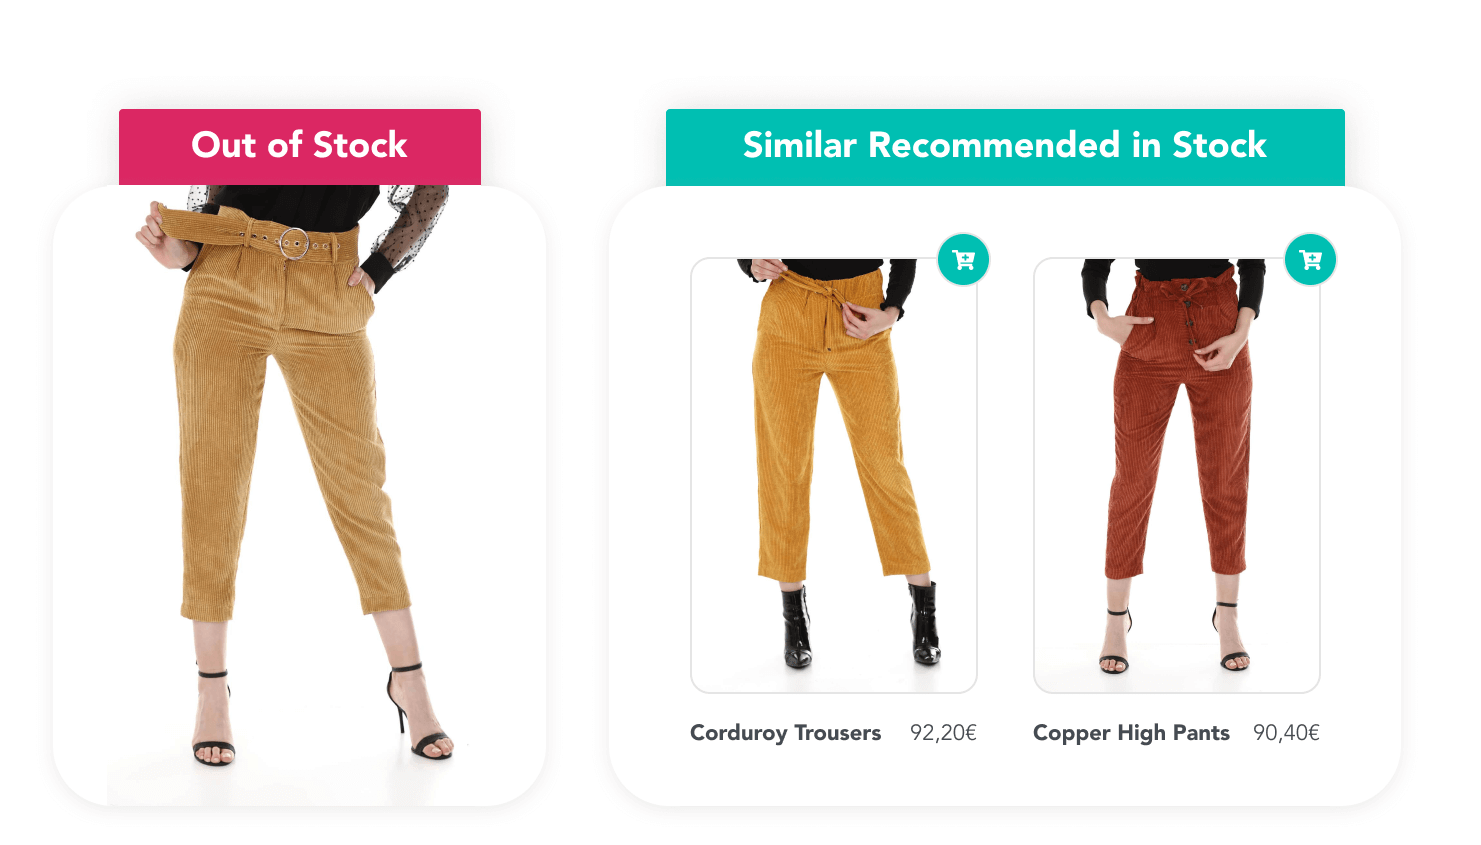 Out of stock trousers with two most similar trousers in stock